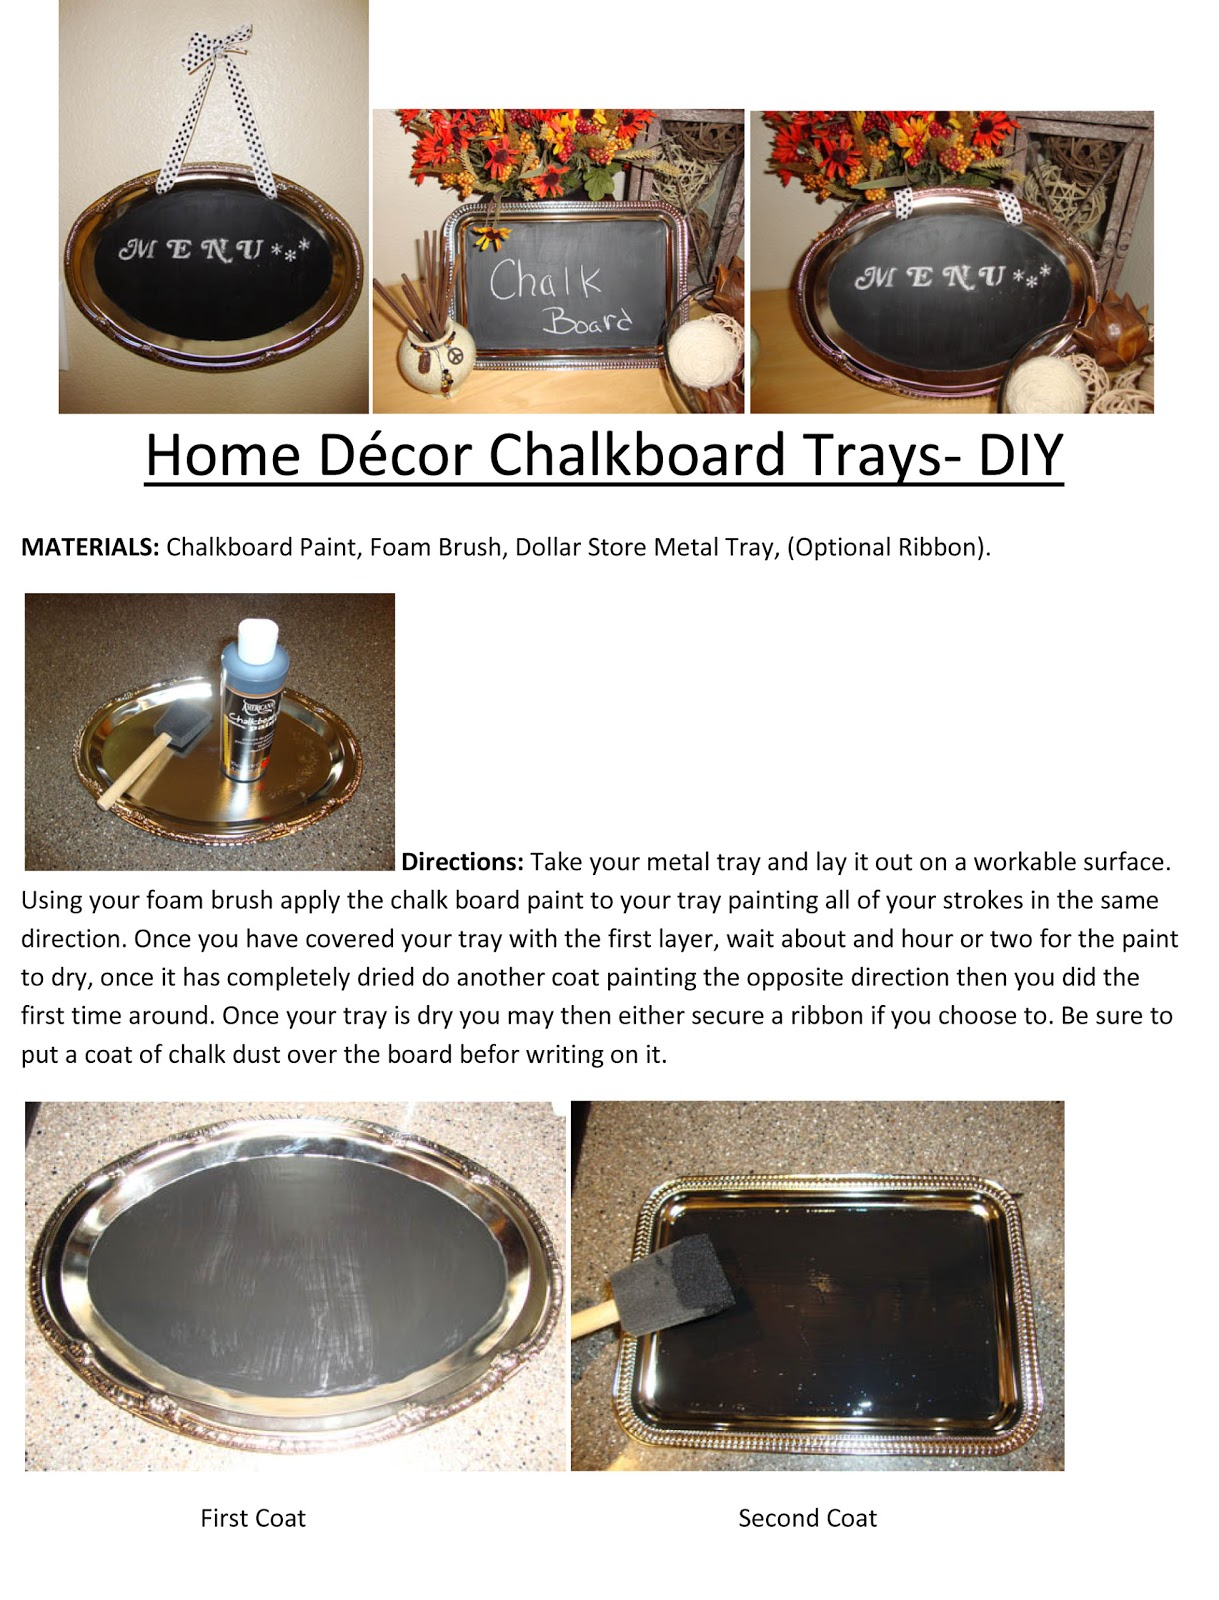 Home Decor Chalkboard Trays Diy